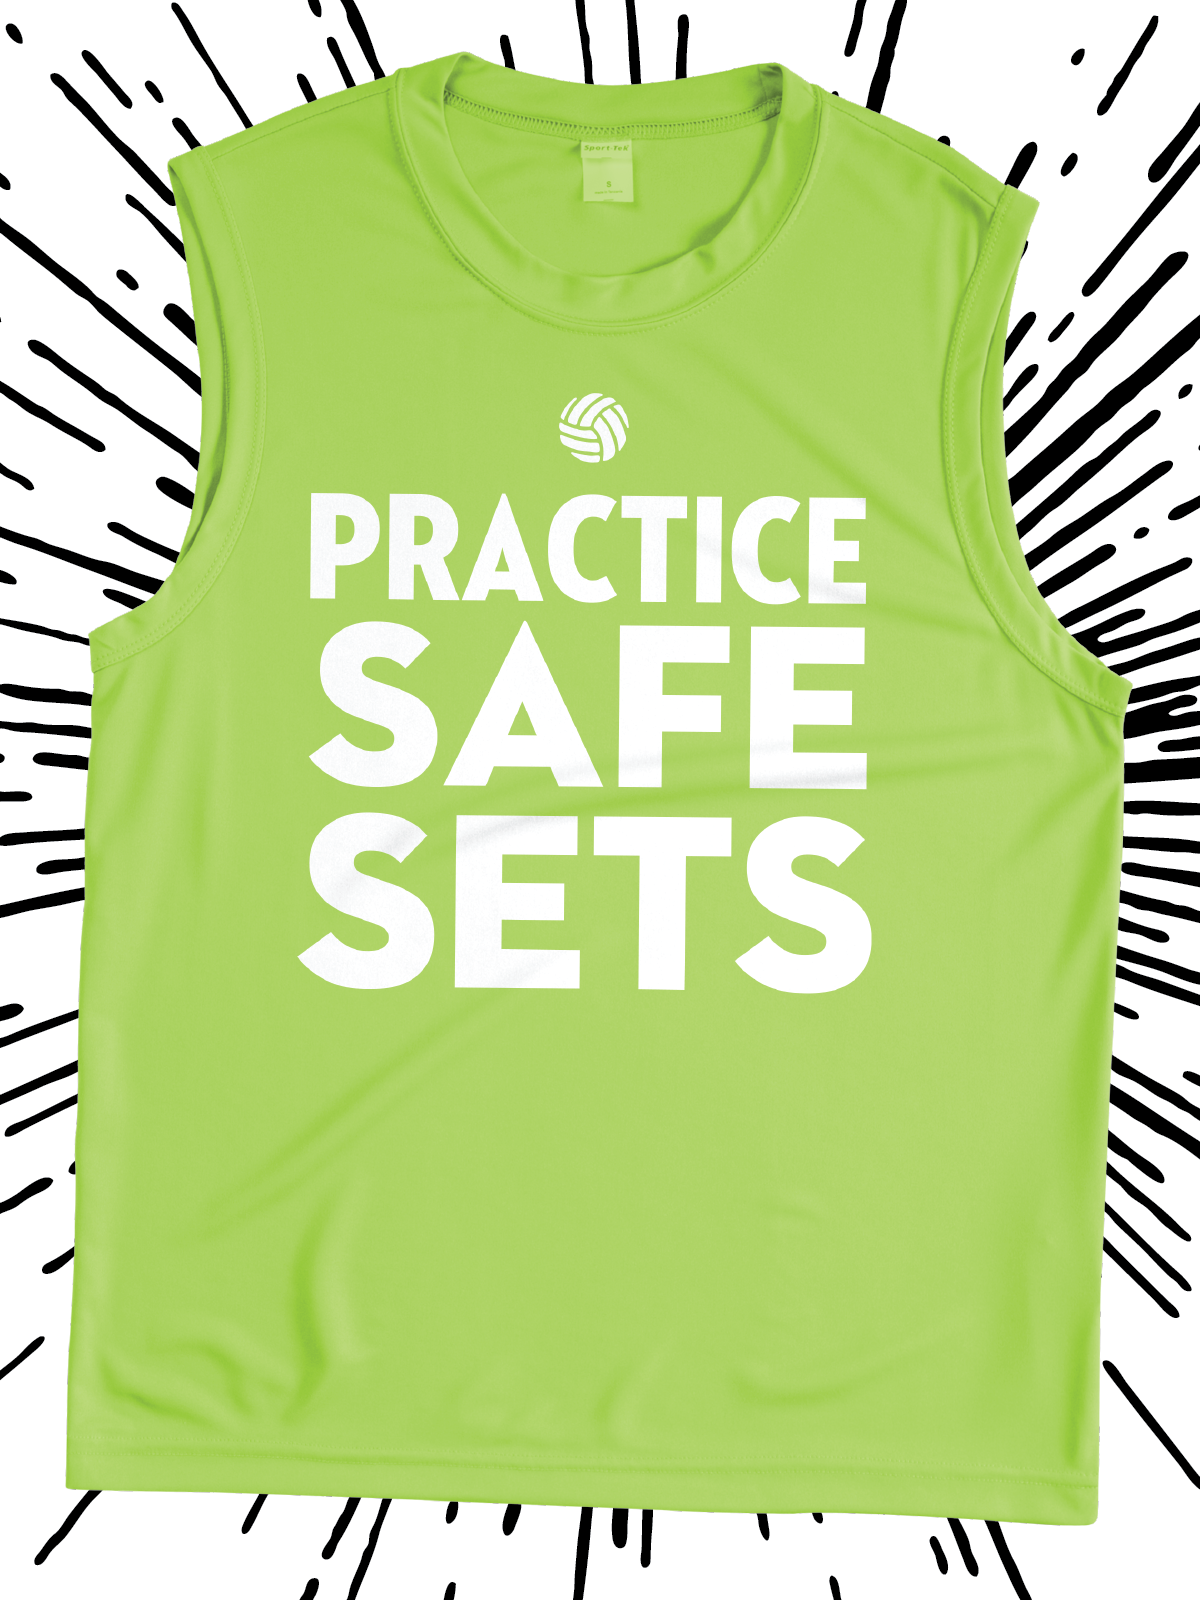 Practice Safe Sets Funny Design Idea For Custom Volleyball Jerseys Team Shirts League Shirts Tank Tops T Shirts Team T Shirts Shirt Designs Team Shirts